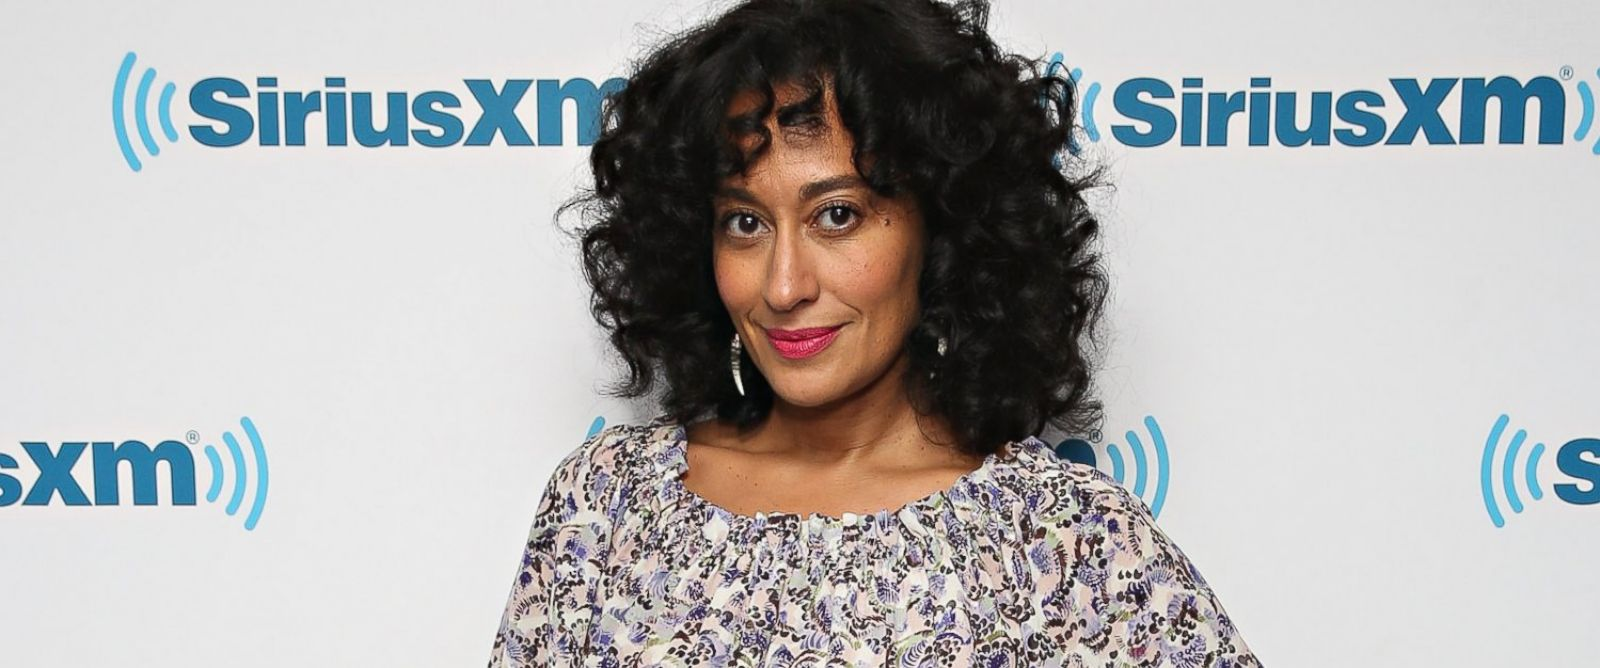 PHOTO: Tracee Ellis Ross visits the SiriusXM Studios on March 15, 2016 in New York City.